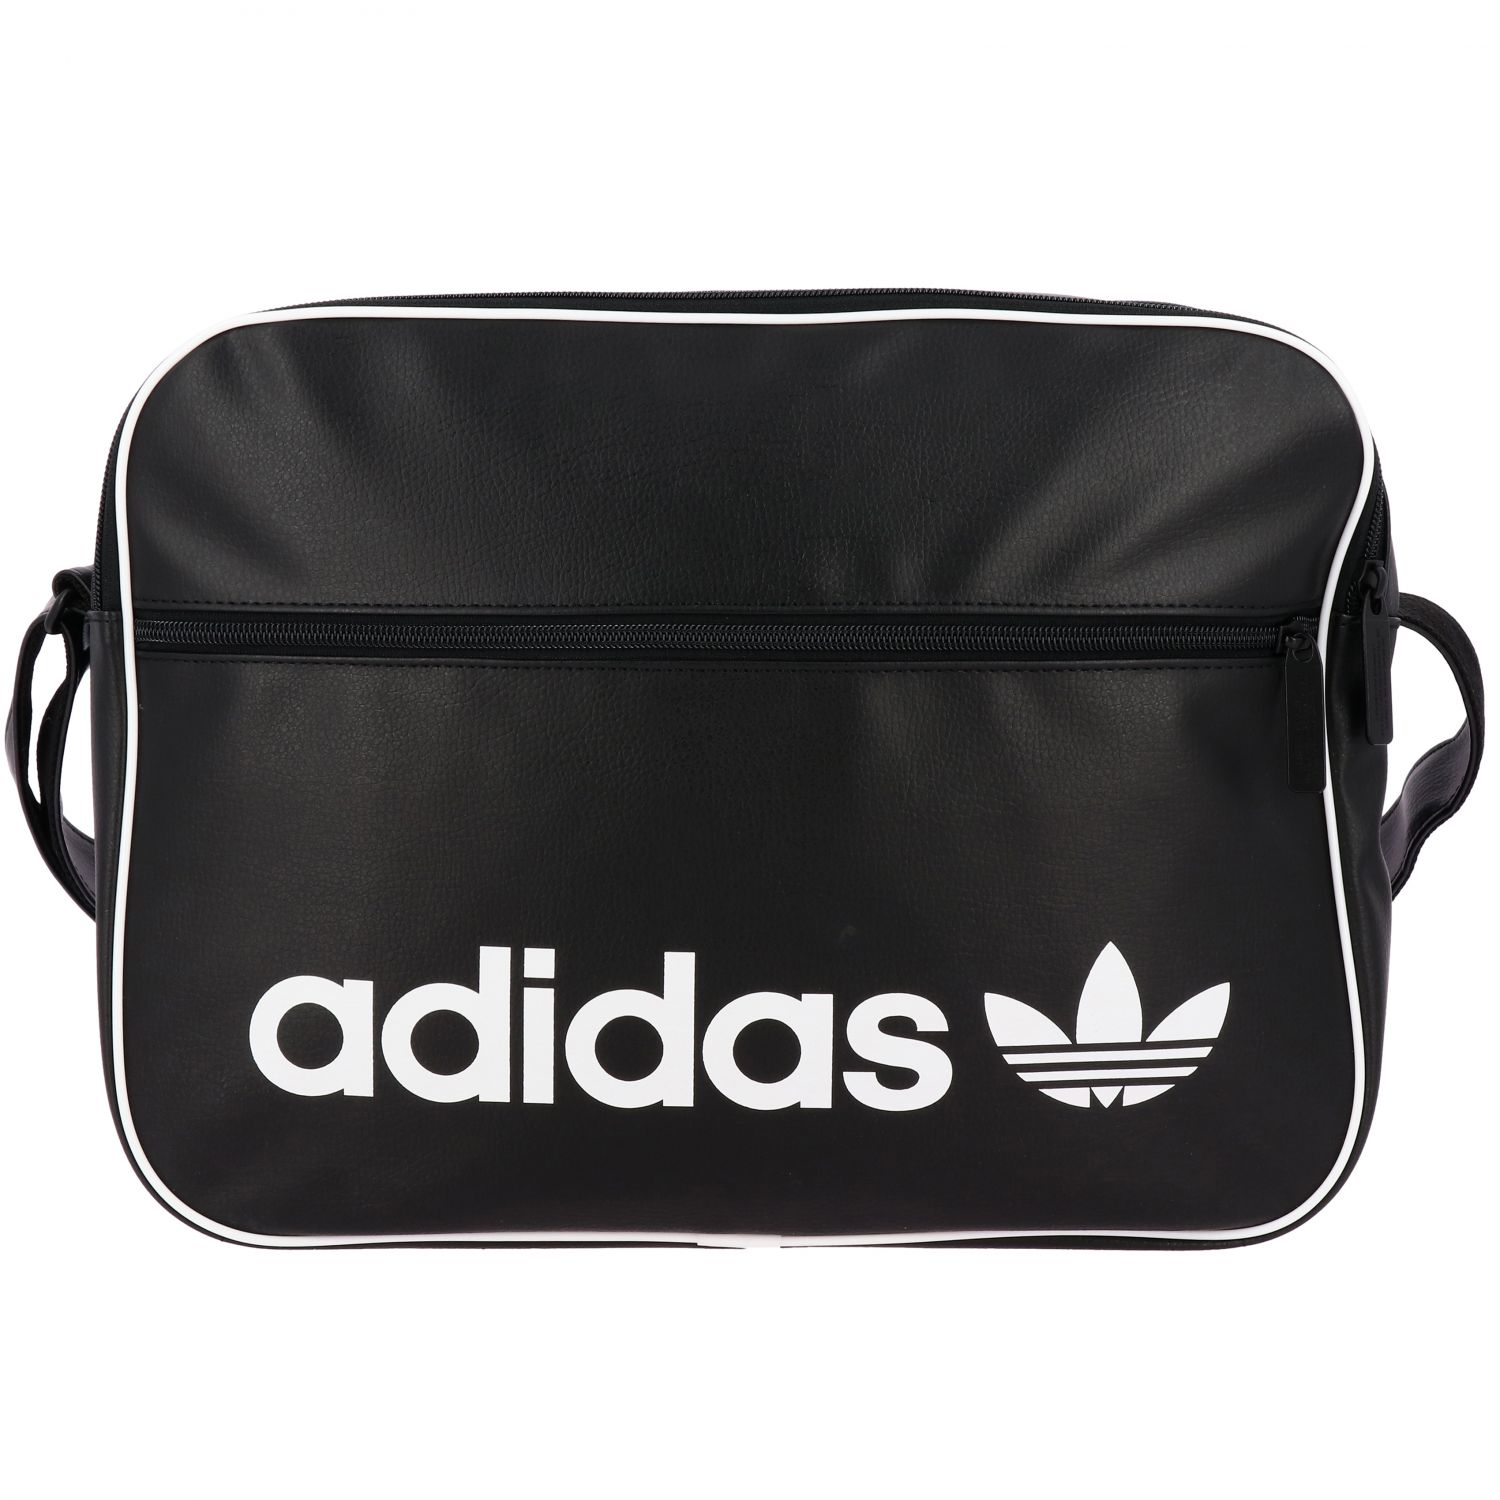 Bag Adidas Originals: Bag kids Adidas Originals black 1